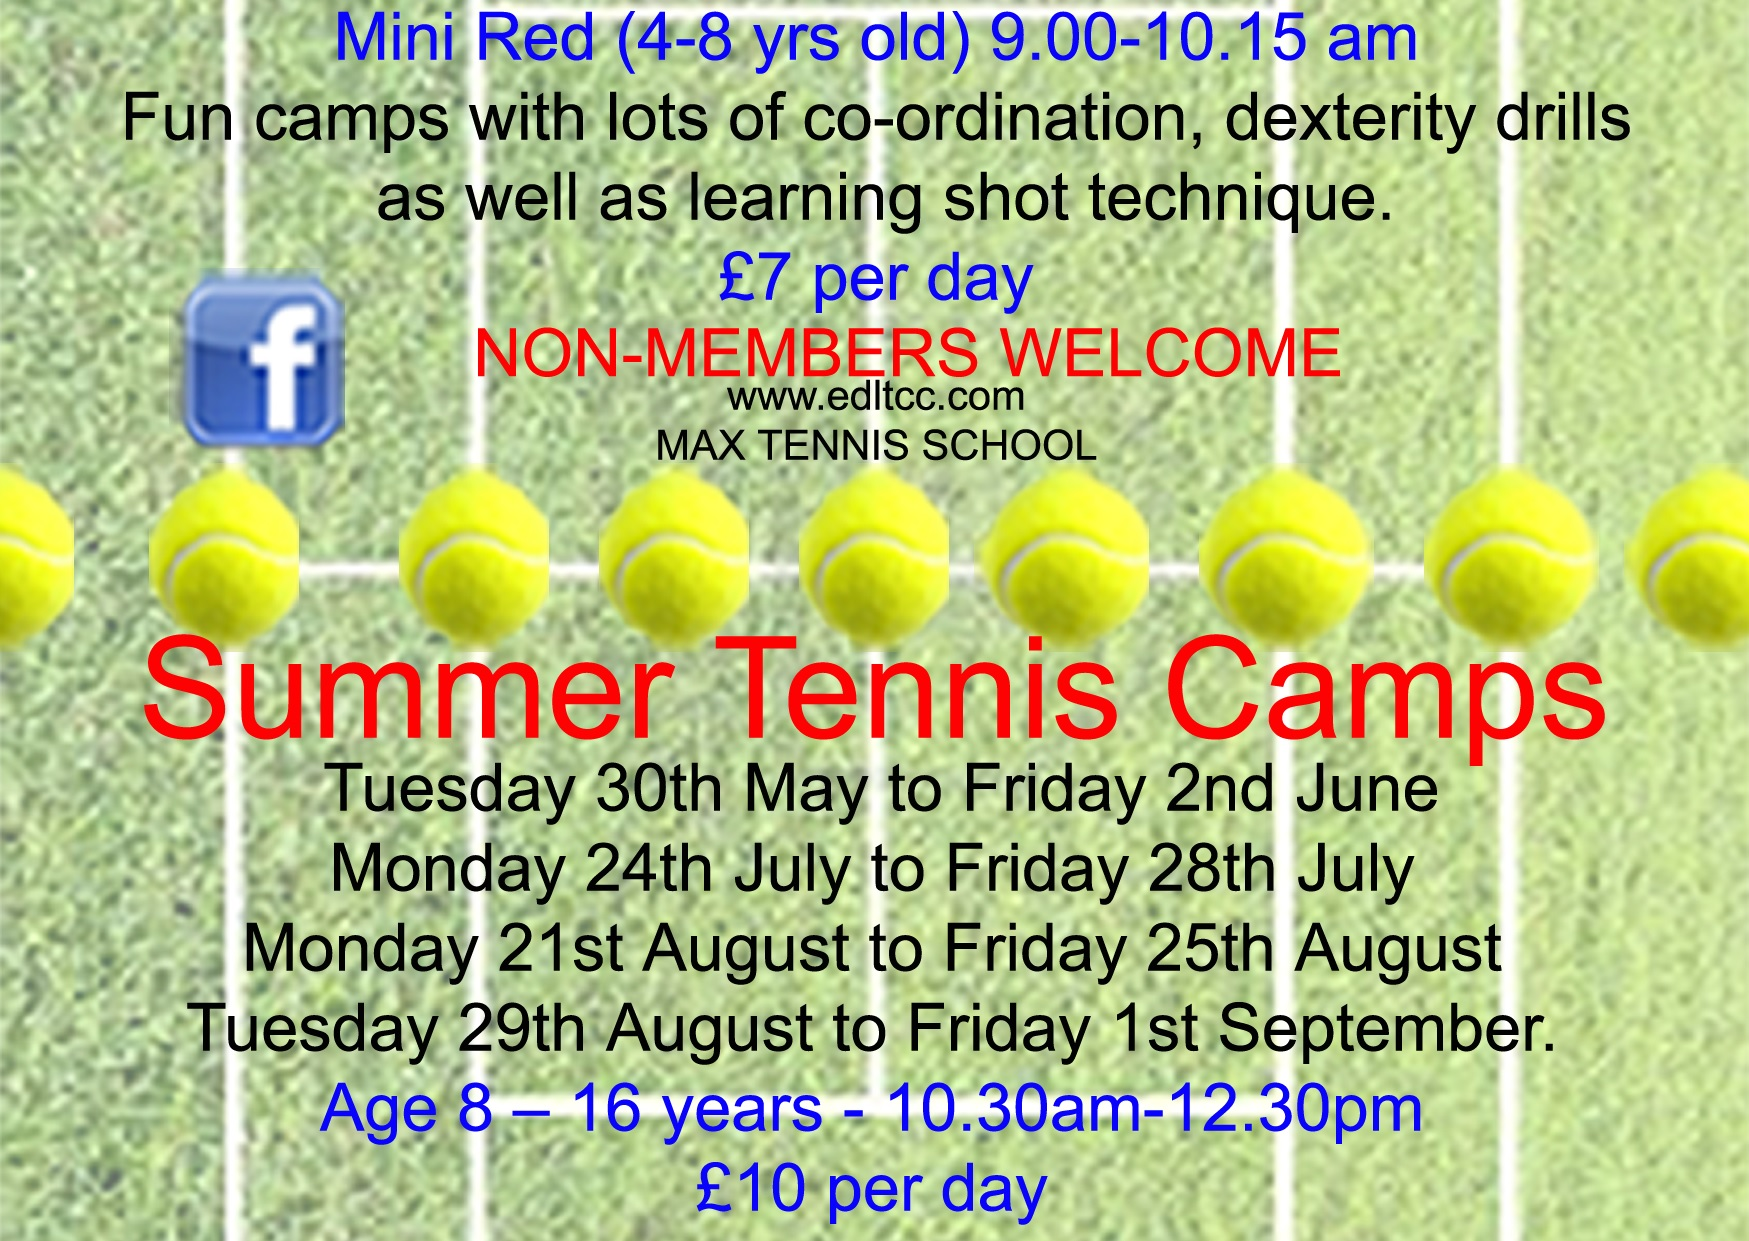 Summer Tennis Camps for juniors